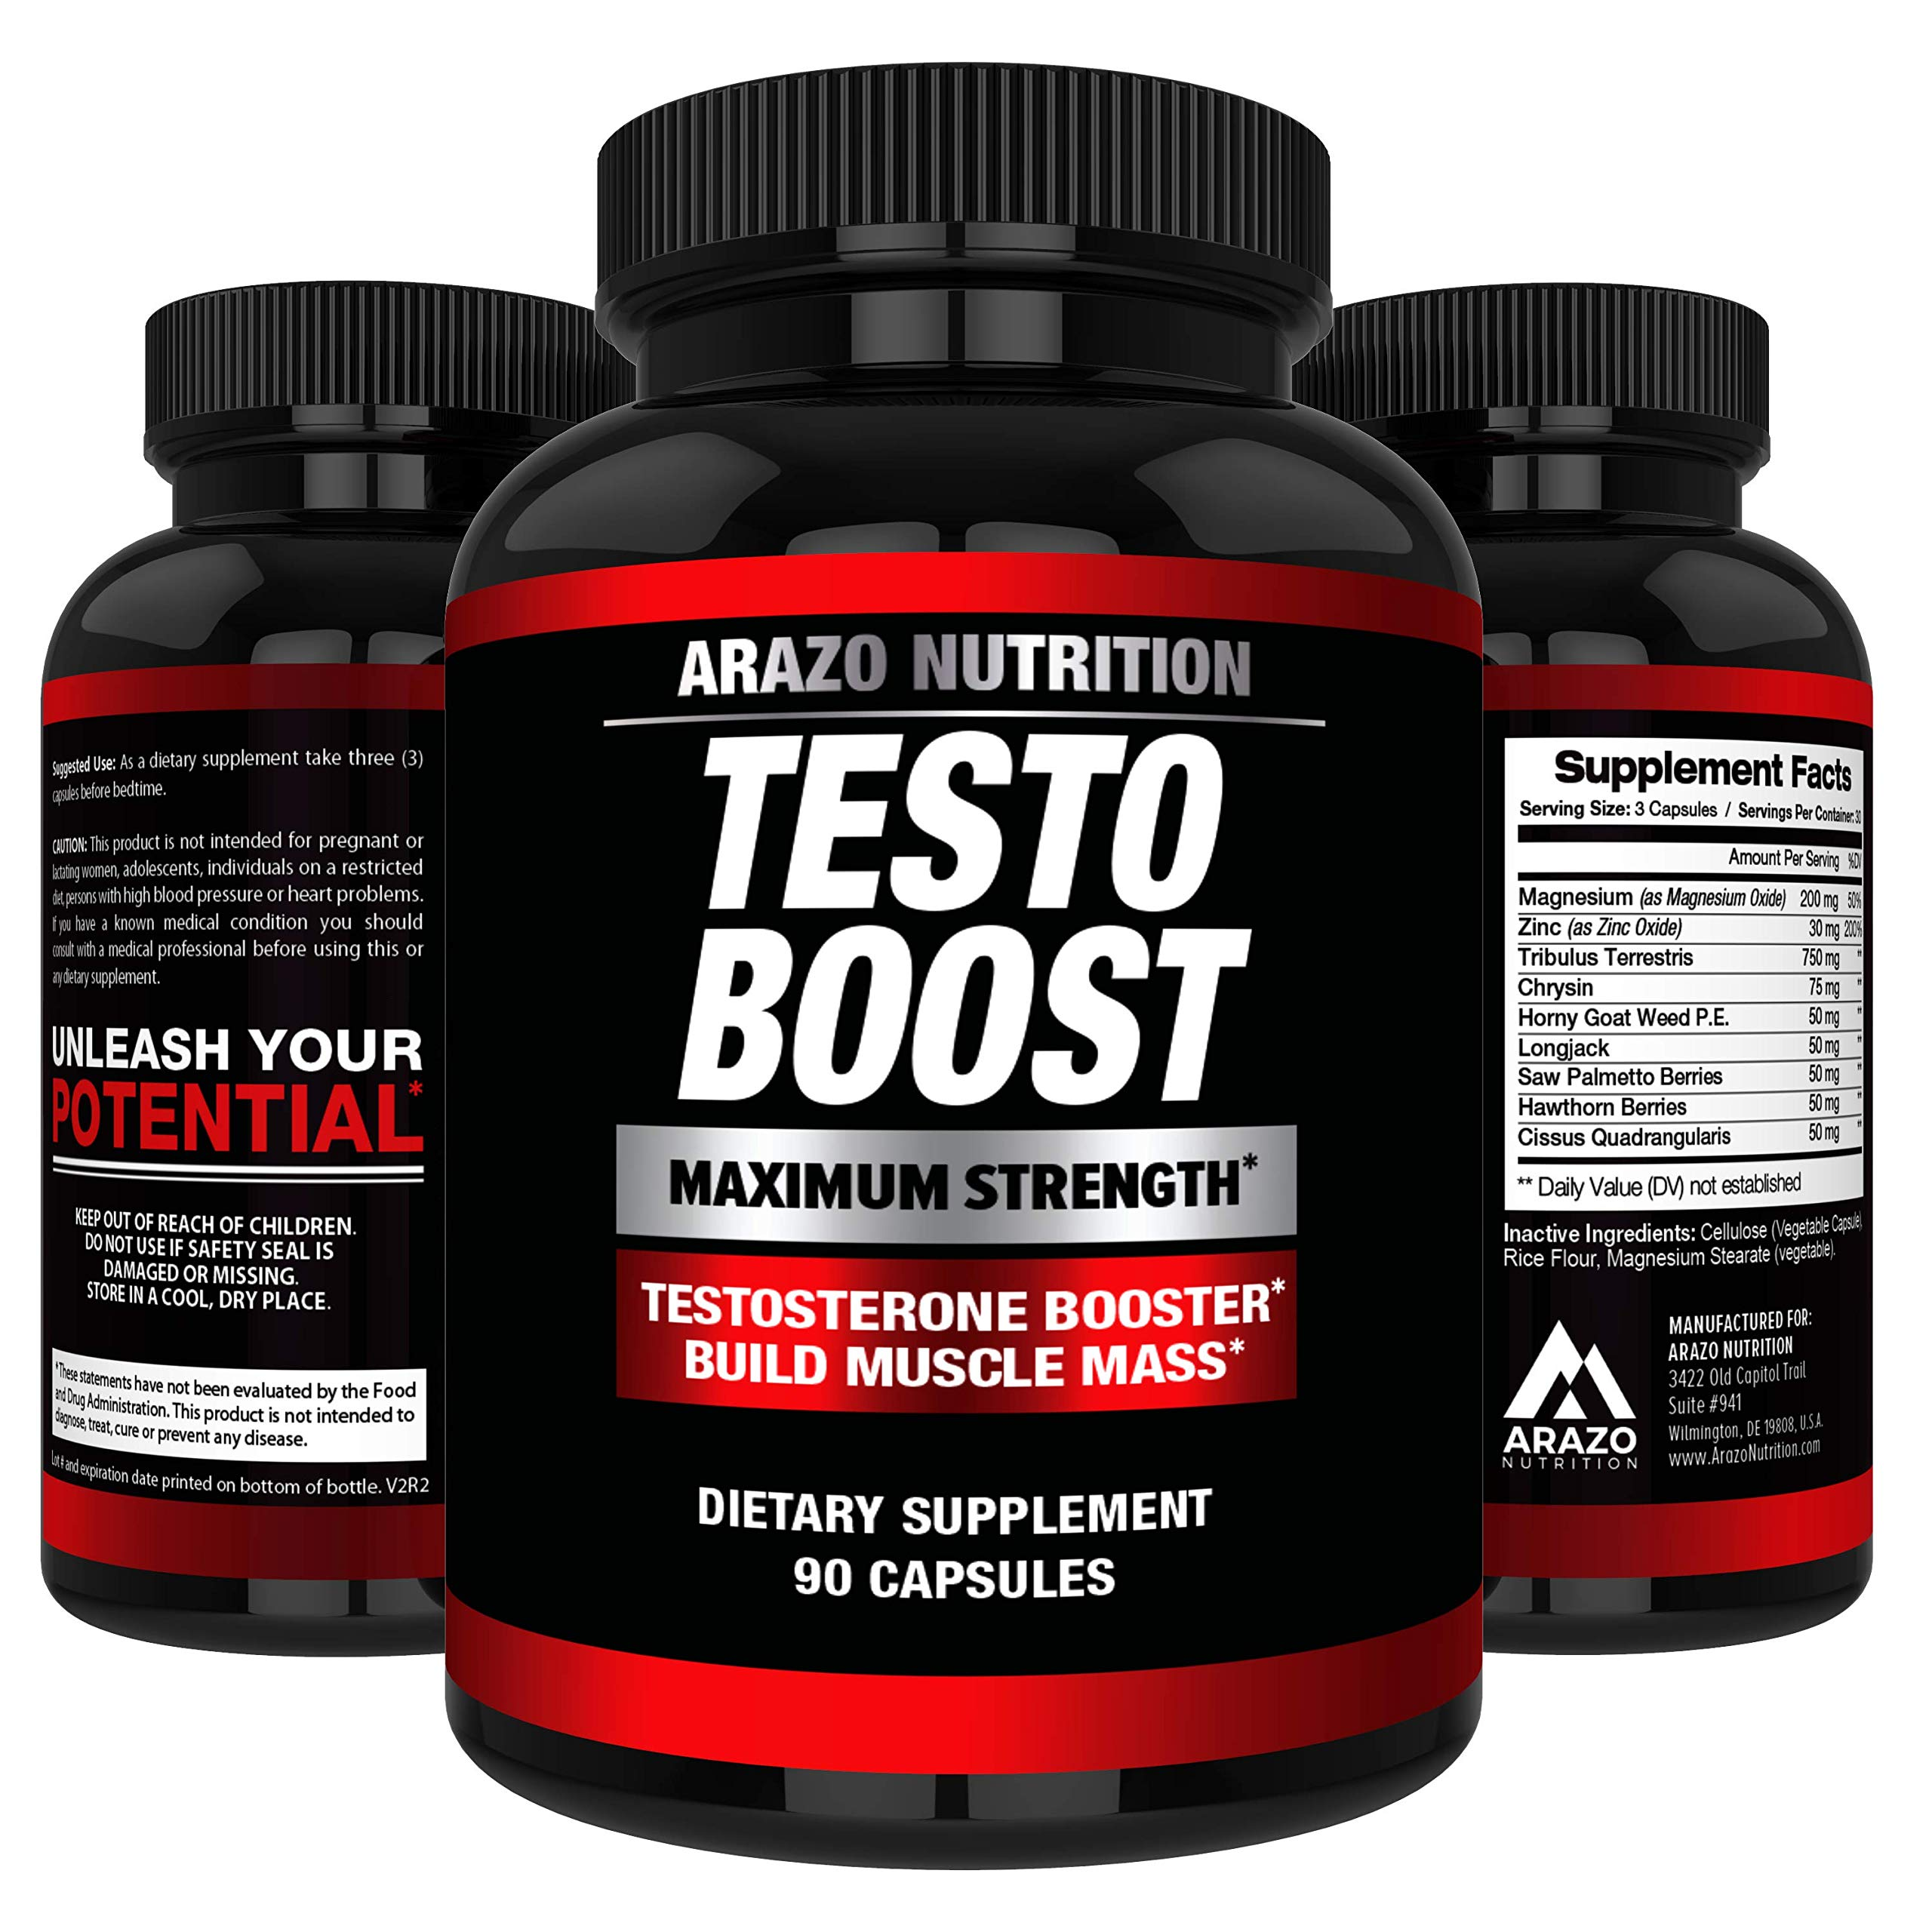 TESTOBOOST Test Booster Supplement   Potent & Natural Herbal Pills   Boost Muscle Growth   Tribulus, Horny Goat Weed, Hawthorn, Zinc, Minerals  Arazo Nutrition USA